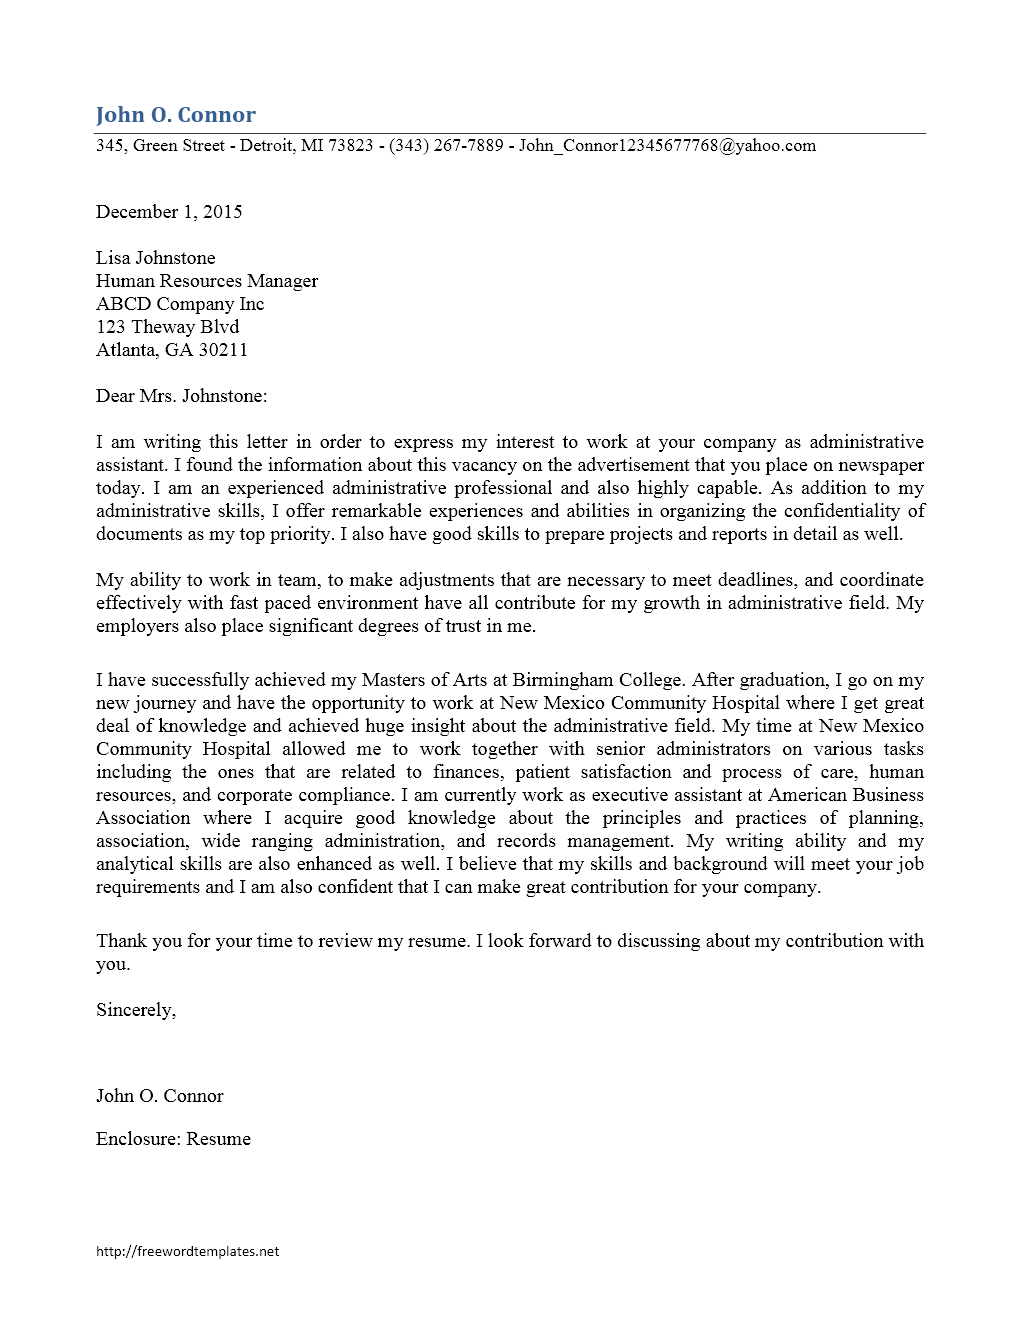 Sample Administrative Cover Letter Choice Image - Cover Letter Ideas